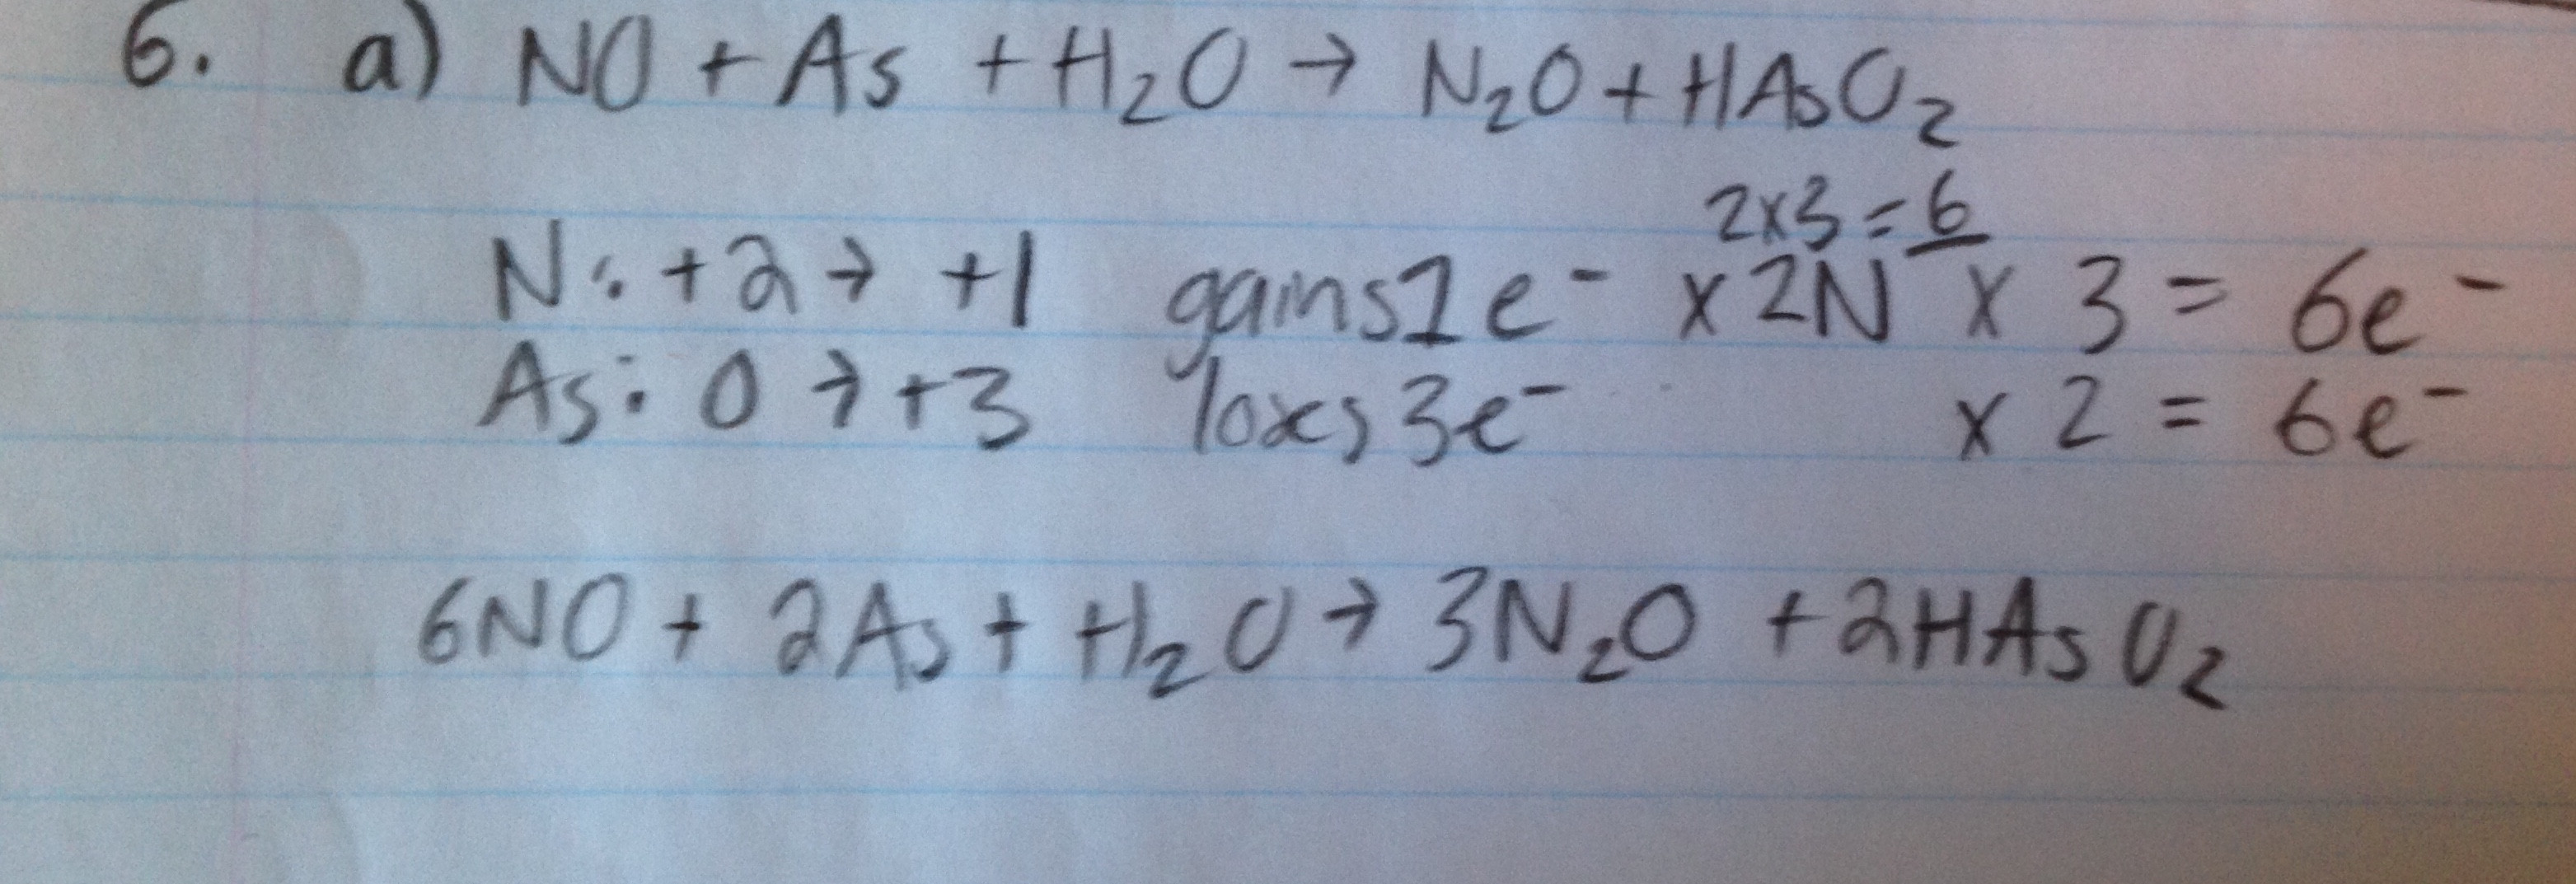 Balancing Redox Reactions In A Basic Solution When No H